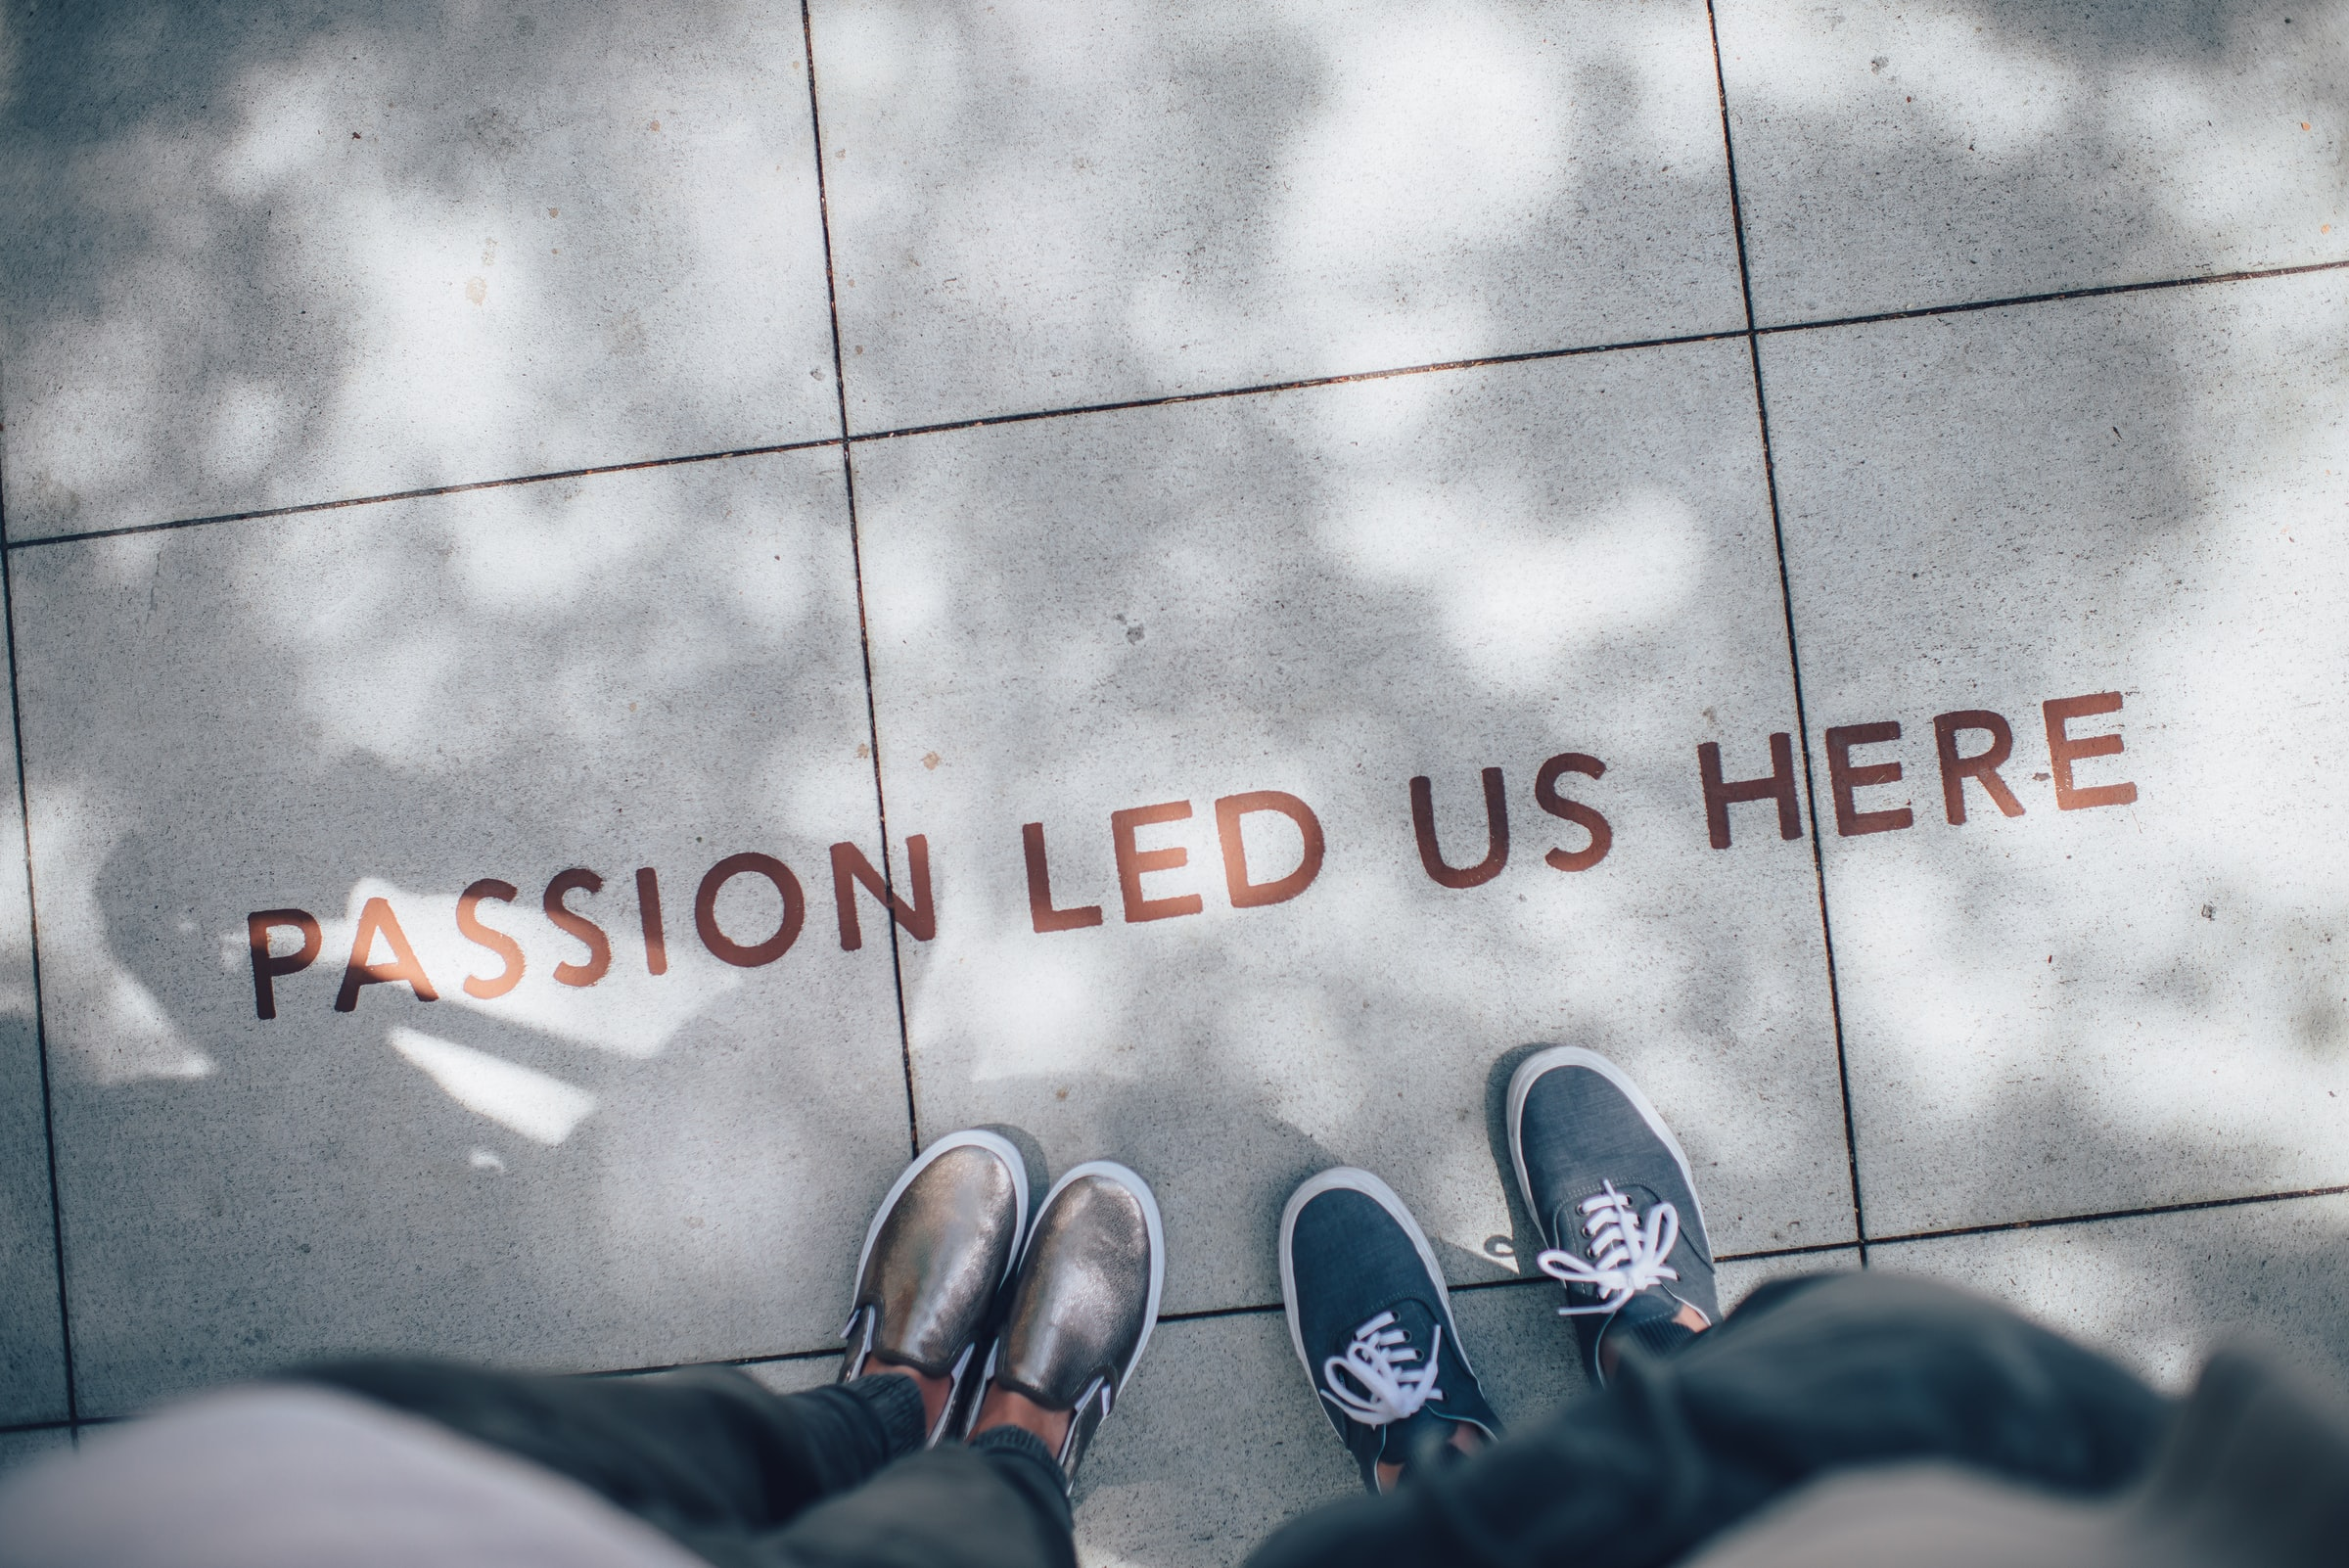 'Passion Led Us Here' written on pavement about two peoples feet.